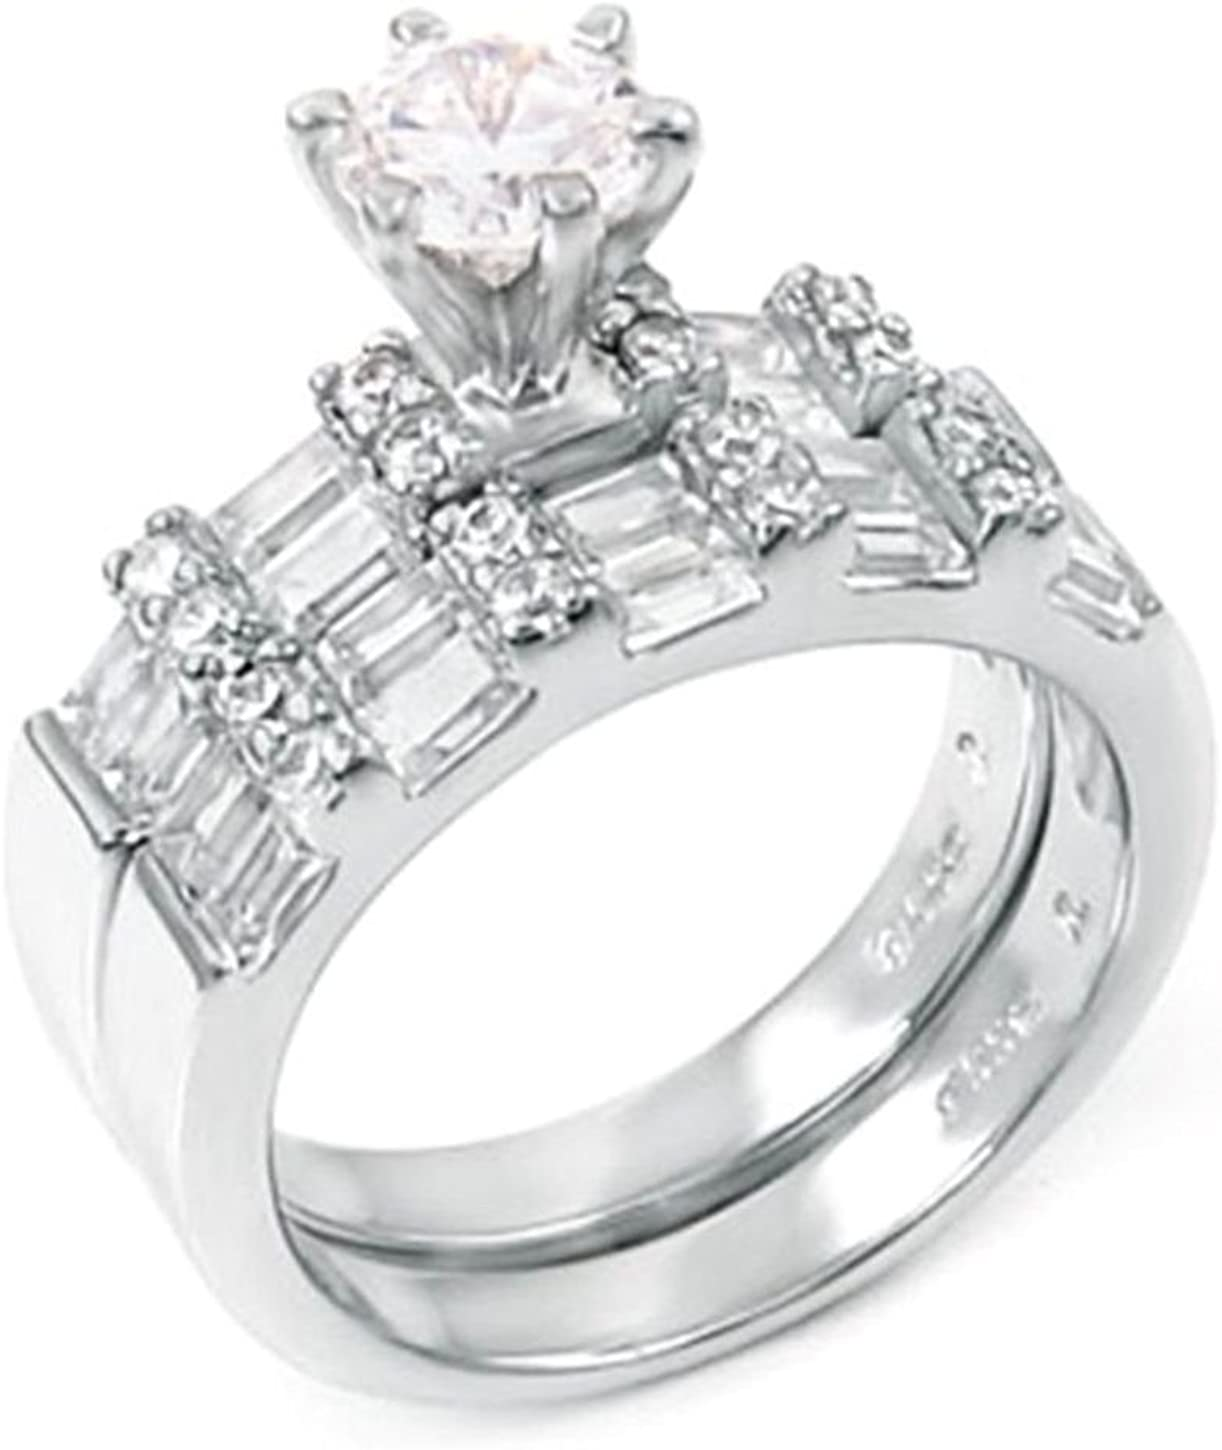 .85 Max 50% OFF ct Round and Baguette Bridal designer Set Wedding Miami Mall 925 ring S